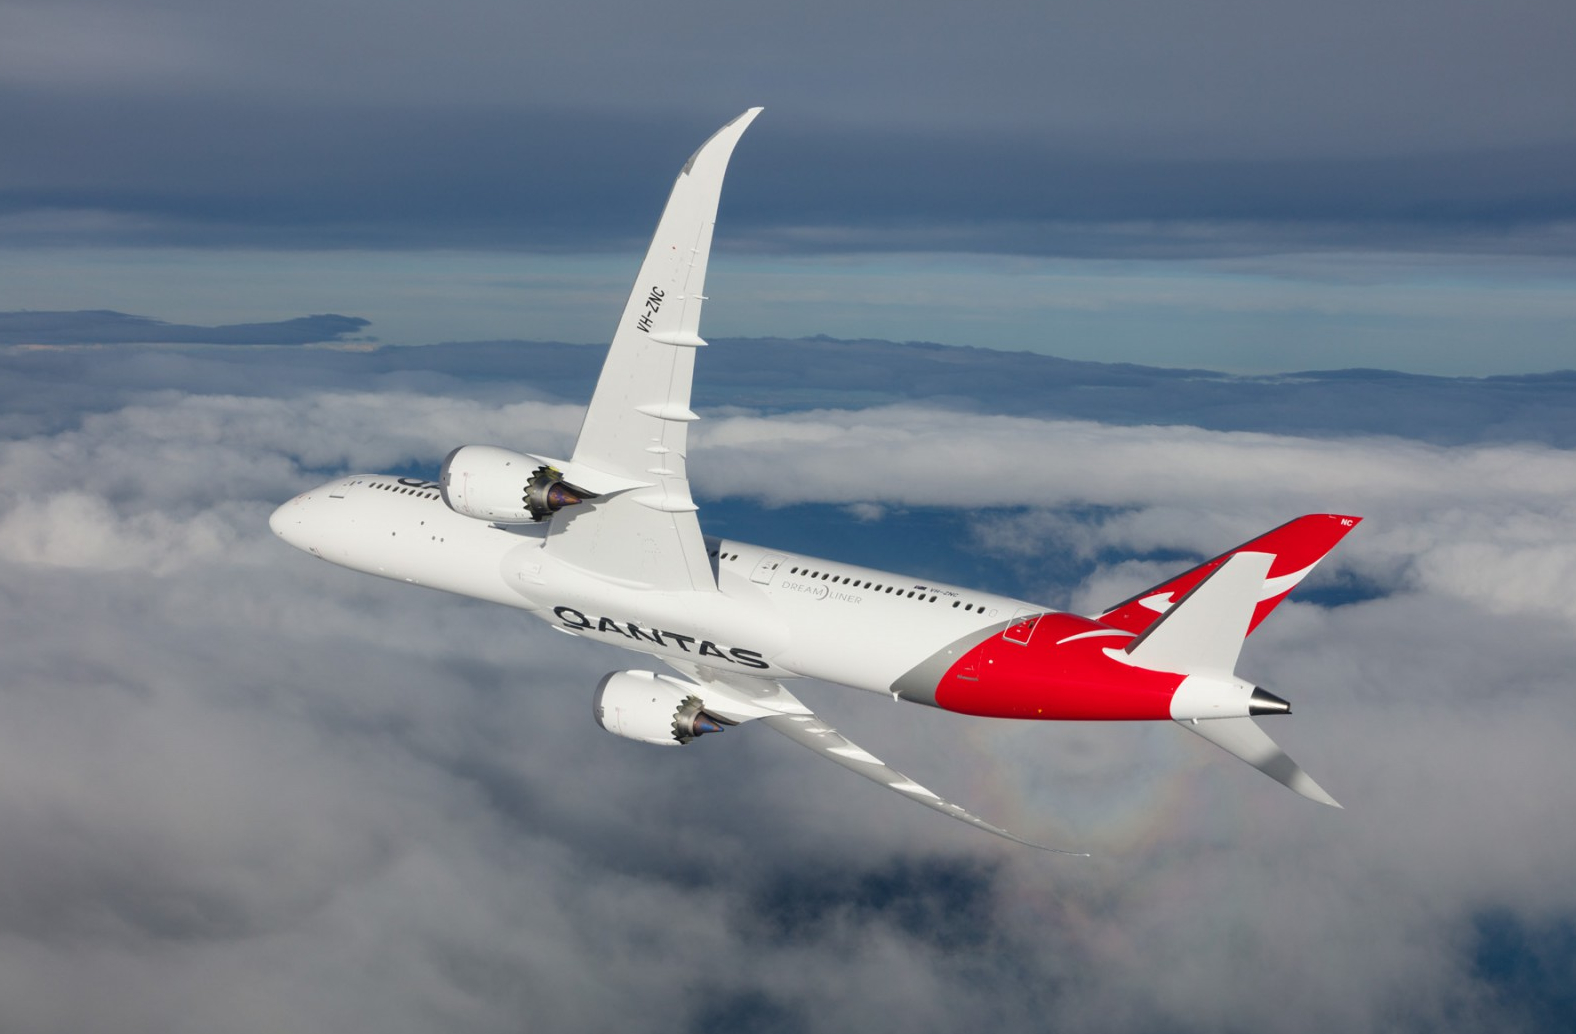 Qantas Boeing 787-9 Dreamliner Heavy Rolling and Yawing